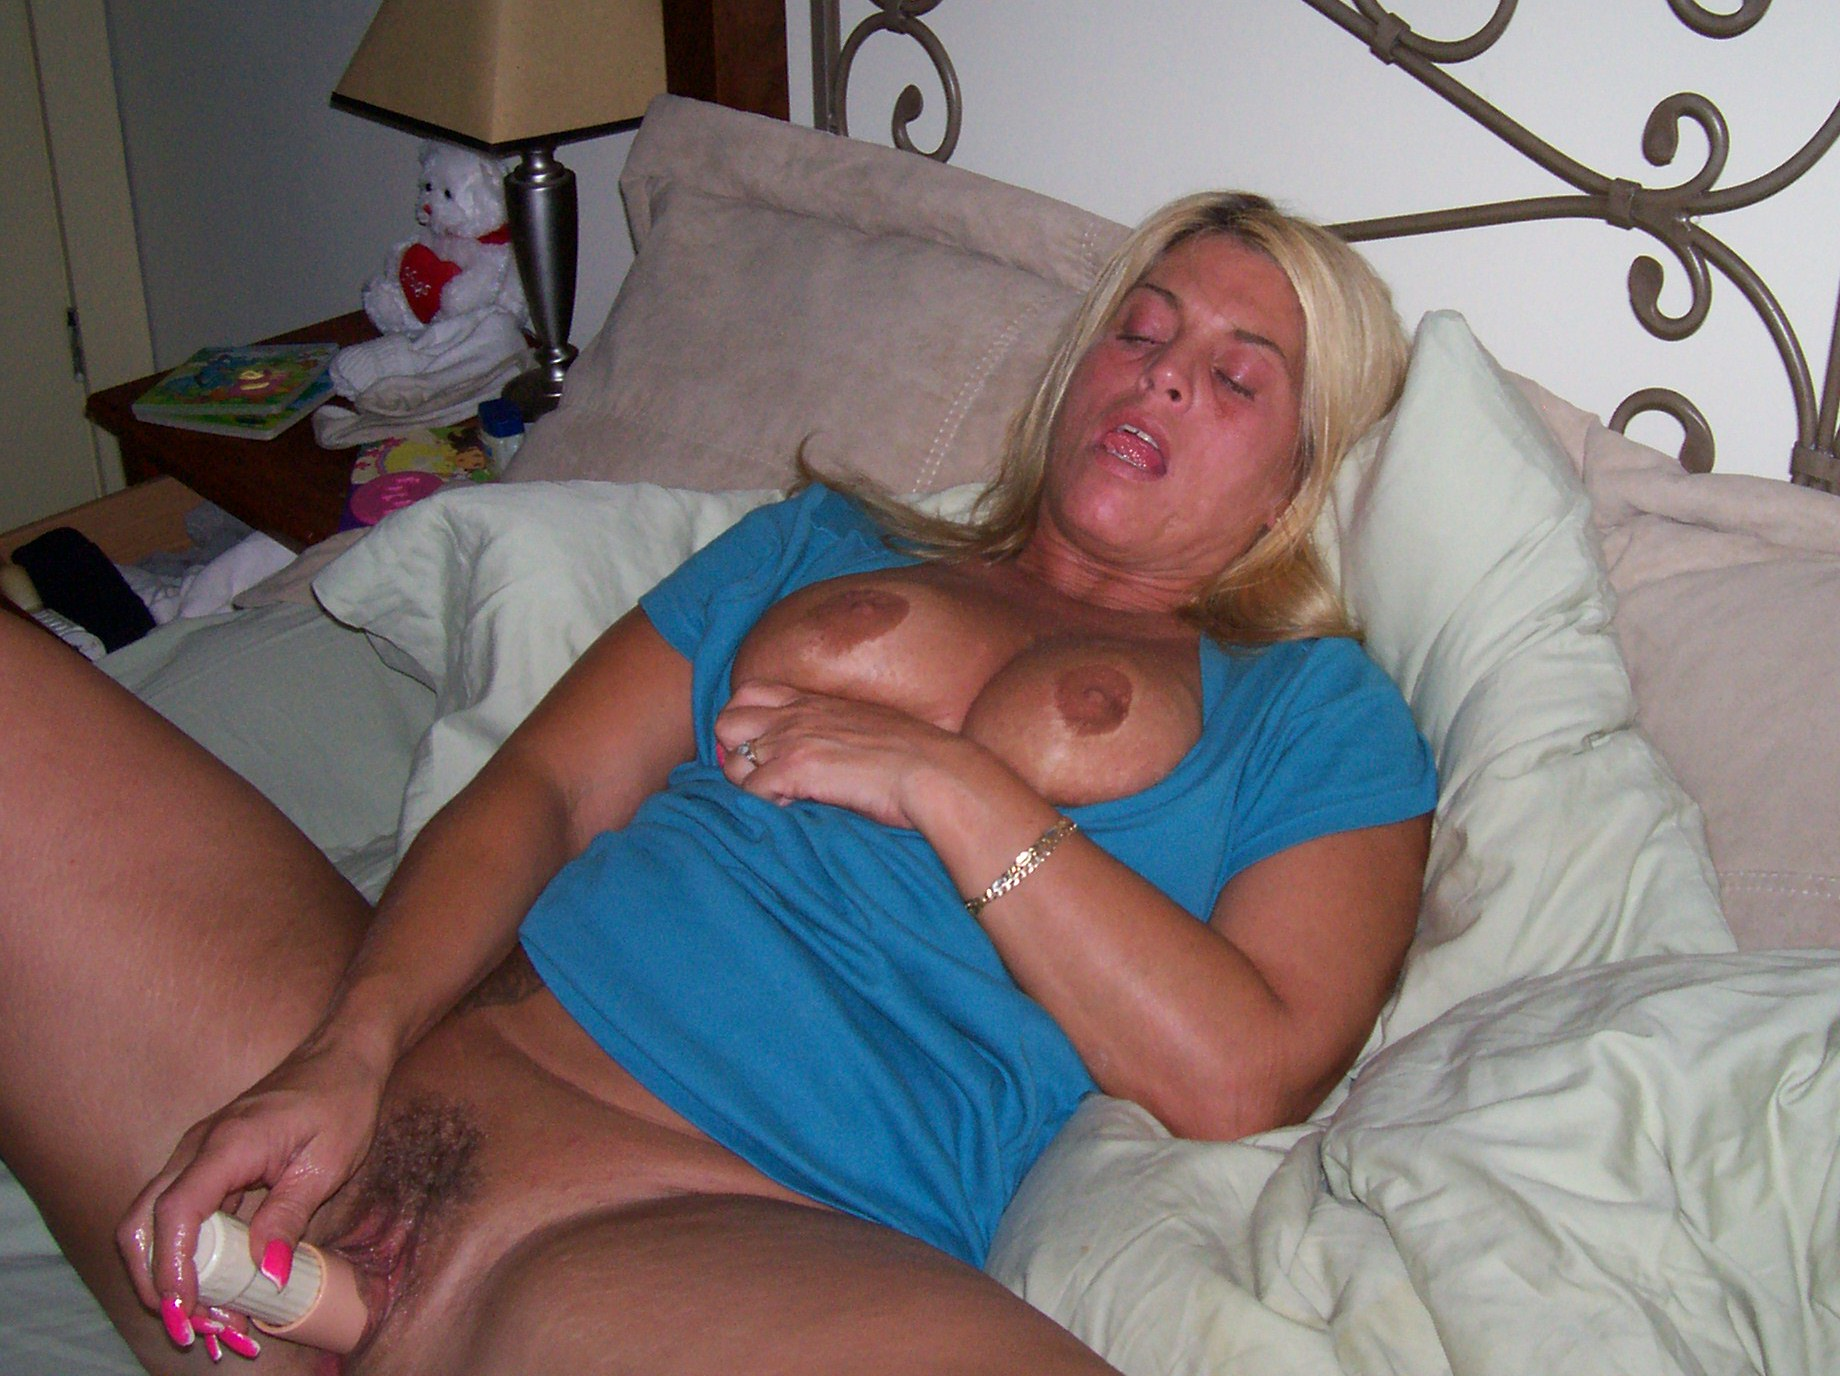 Milf amateur 40 lus videos